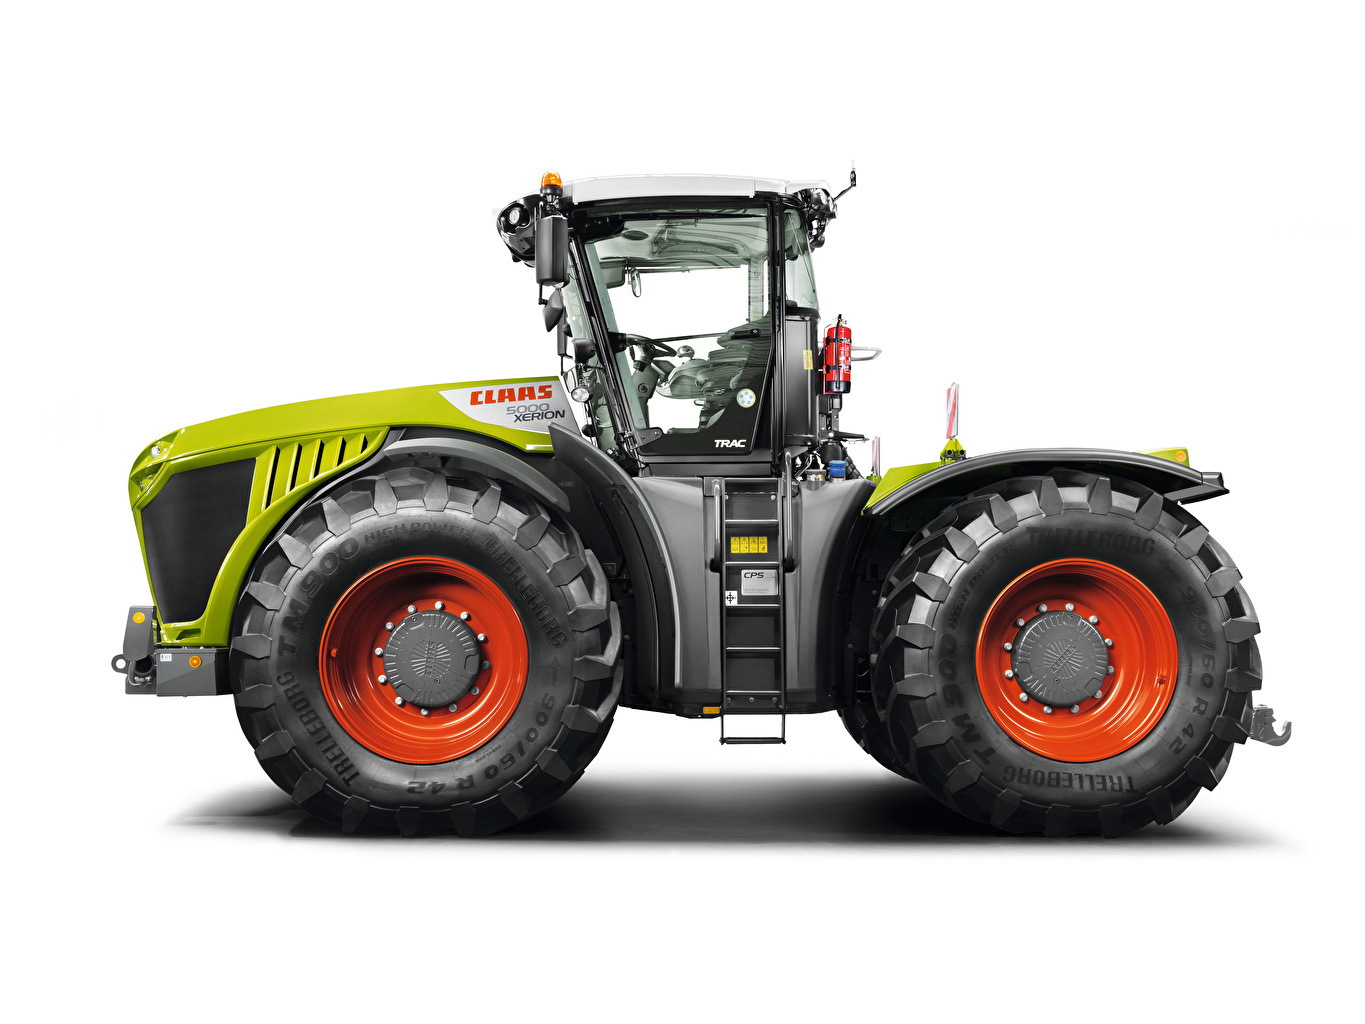 Photo tractors Claas Xerion 5000 Trac, 2014 Side White background Tractor